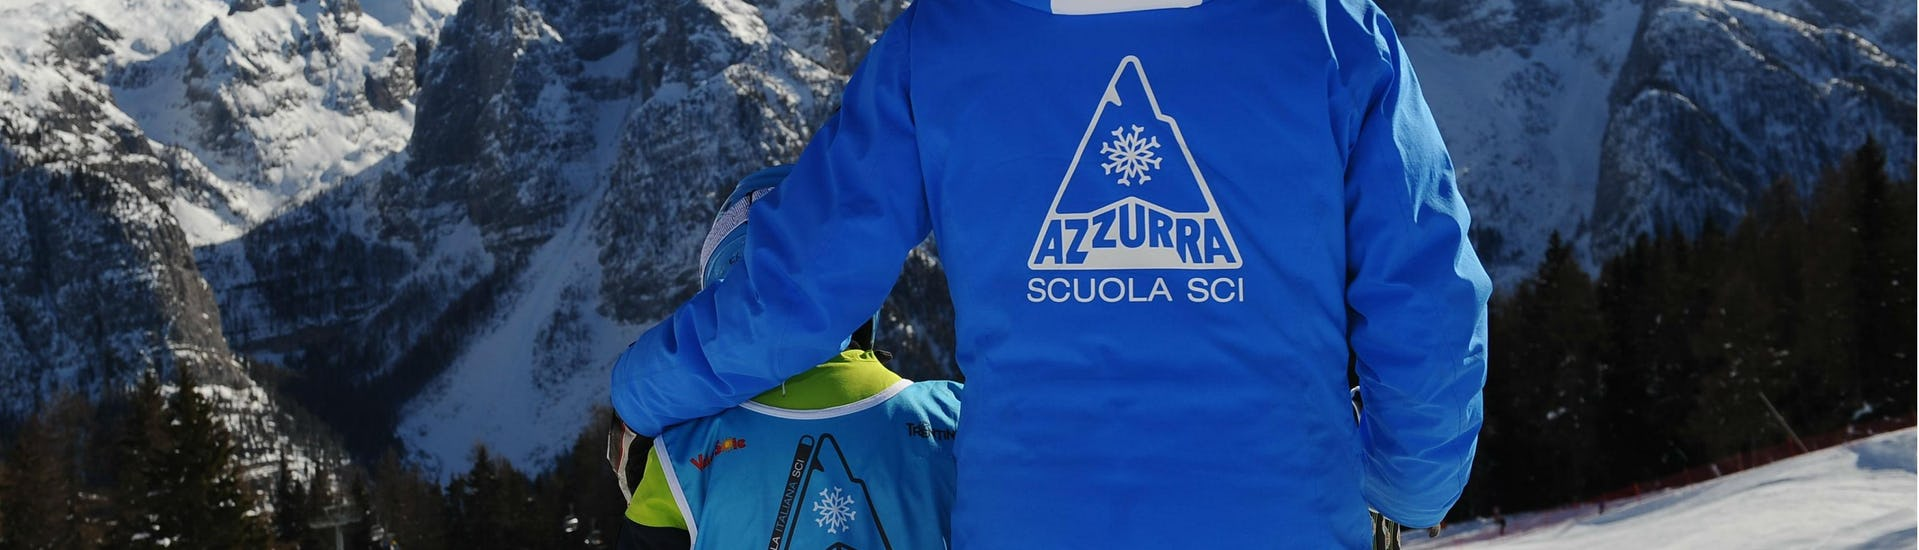 Off-Piste Skiing Lessons - All Levels of the Ski School Scuola Italiana Sci Azzurra Folgarida are taking place, the child is ready to go down the slope.